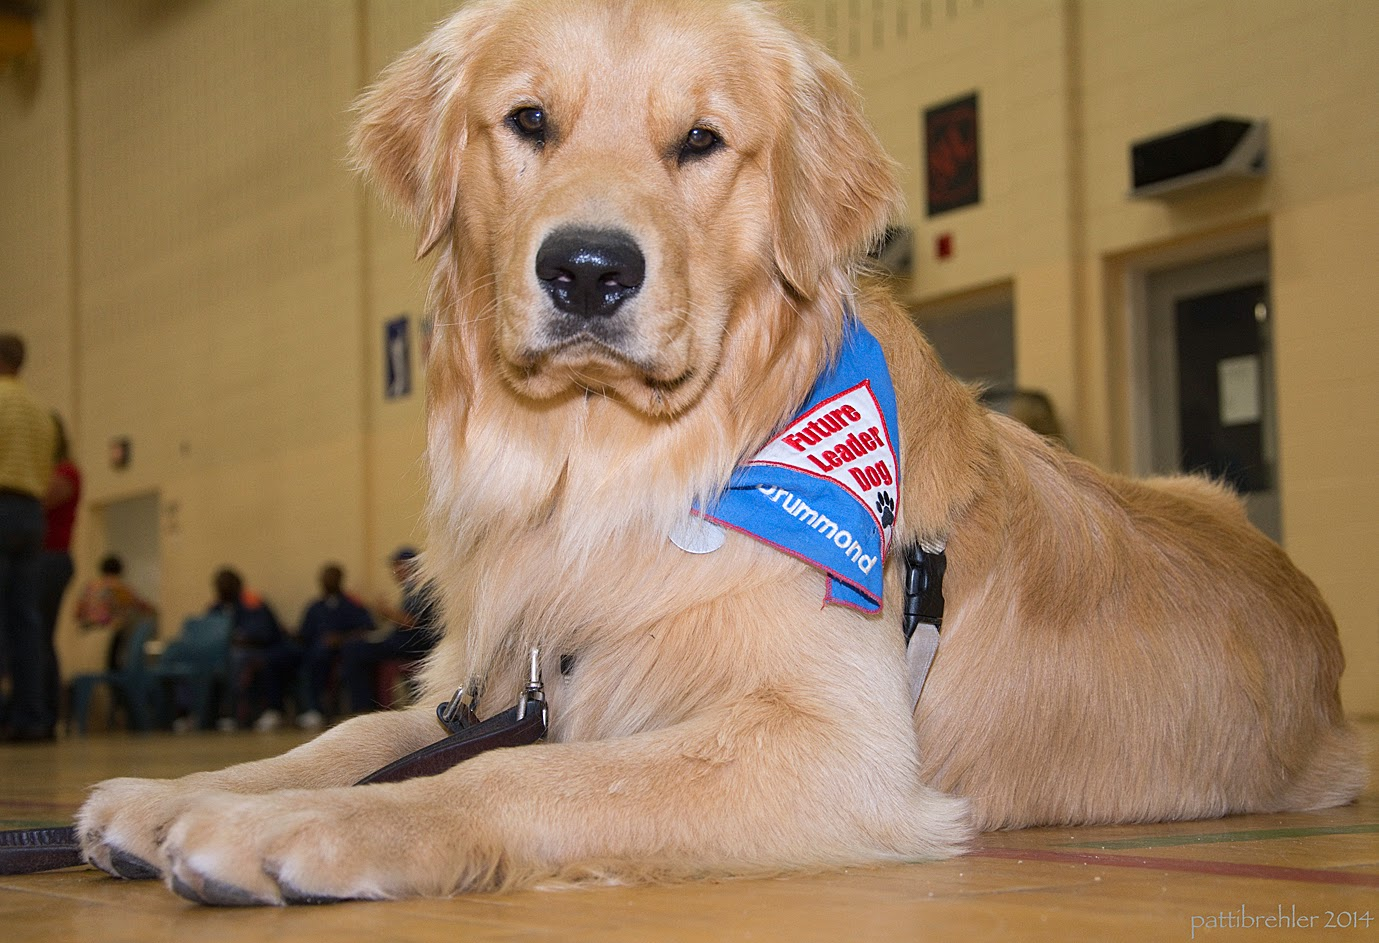 A floor level photo of a grown golden retriever lying on a gym floor. The dog is facing the camera and looking right in the leans. He is wearing a blue Future Leader Dog bandana. There are men in the background out of focus sitting on chairs against the far wall.